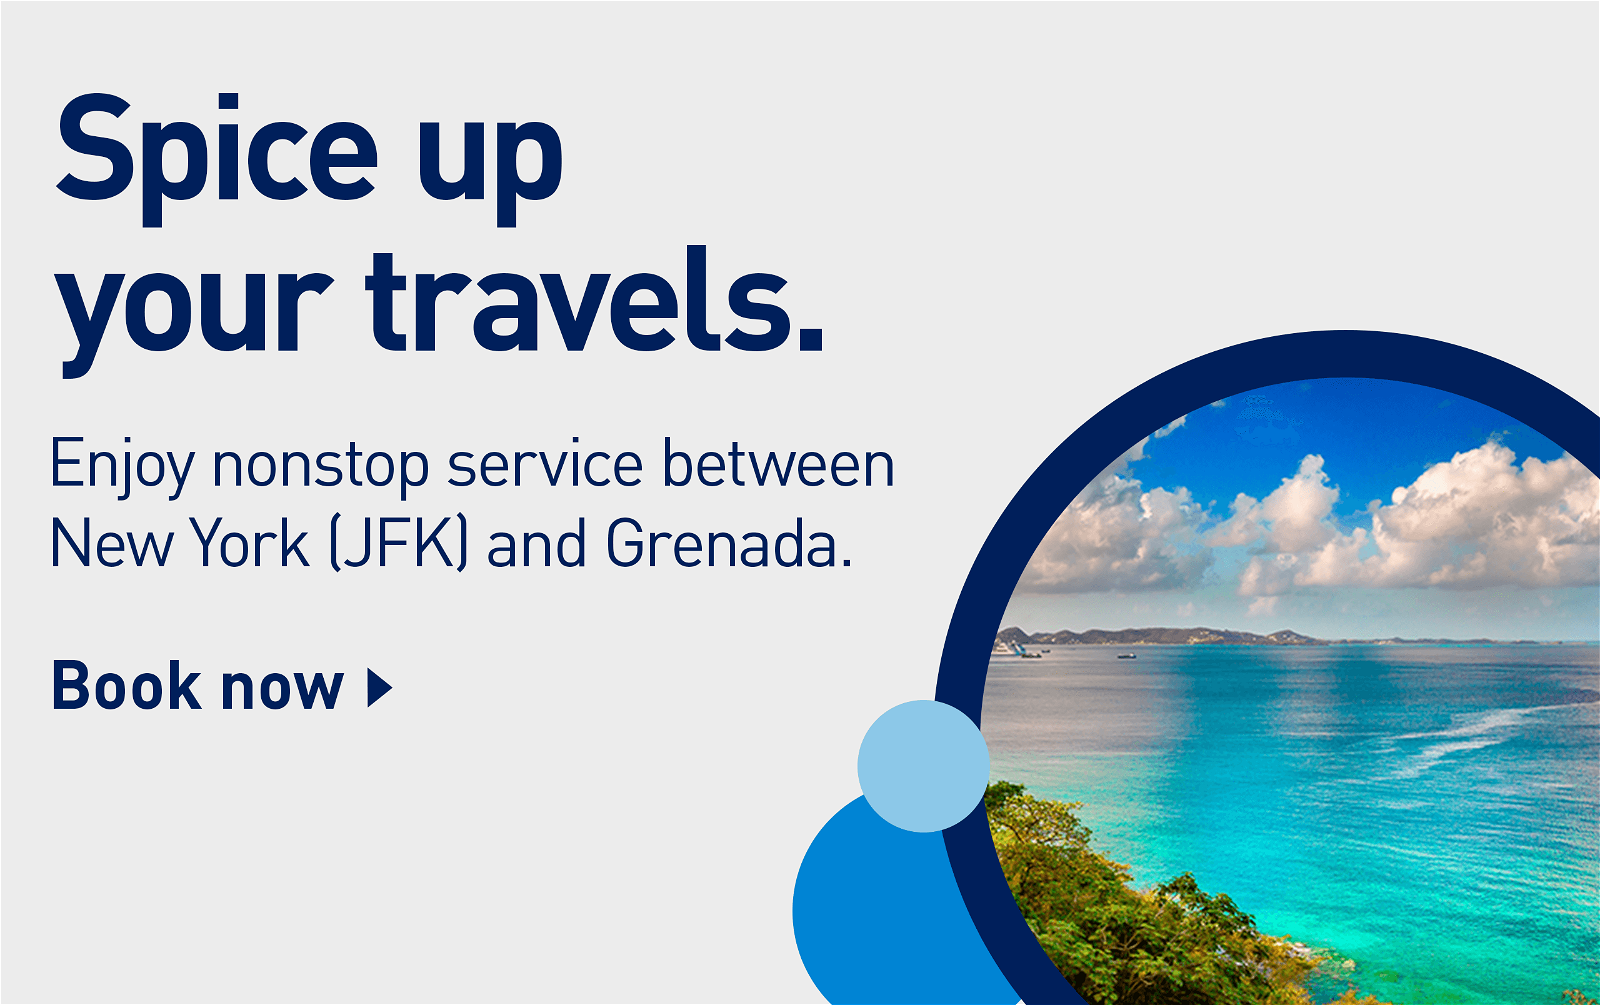 Spice up your travels. | Enjoy nonstop service between New York (JFK) and Grenada. | Book now